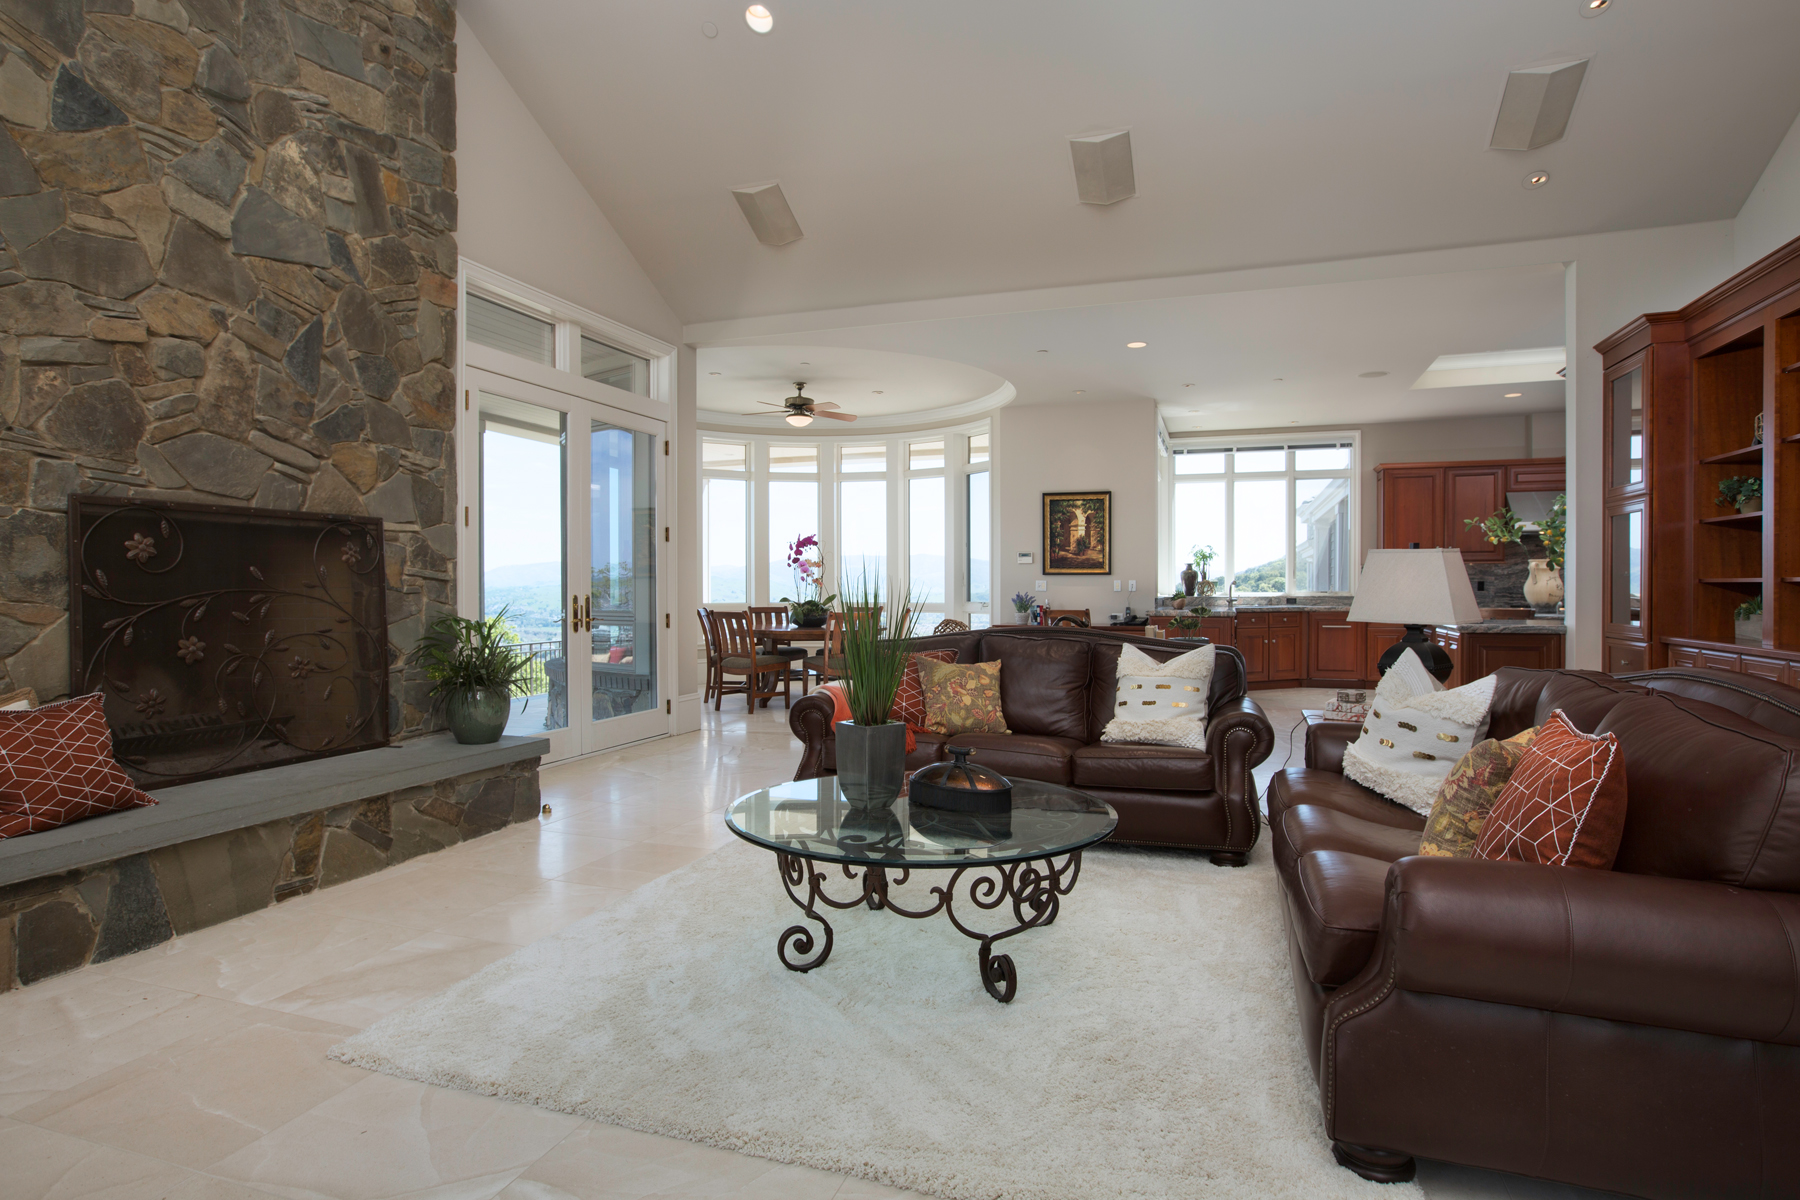 Additional photo for property listing at FOOTHILL ESTATE 4140 Foothill Road Pleasanton, California 94588 United States